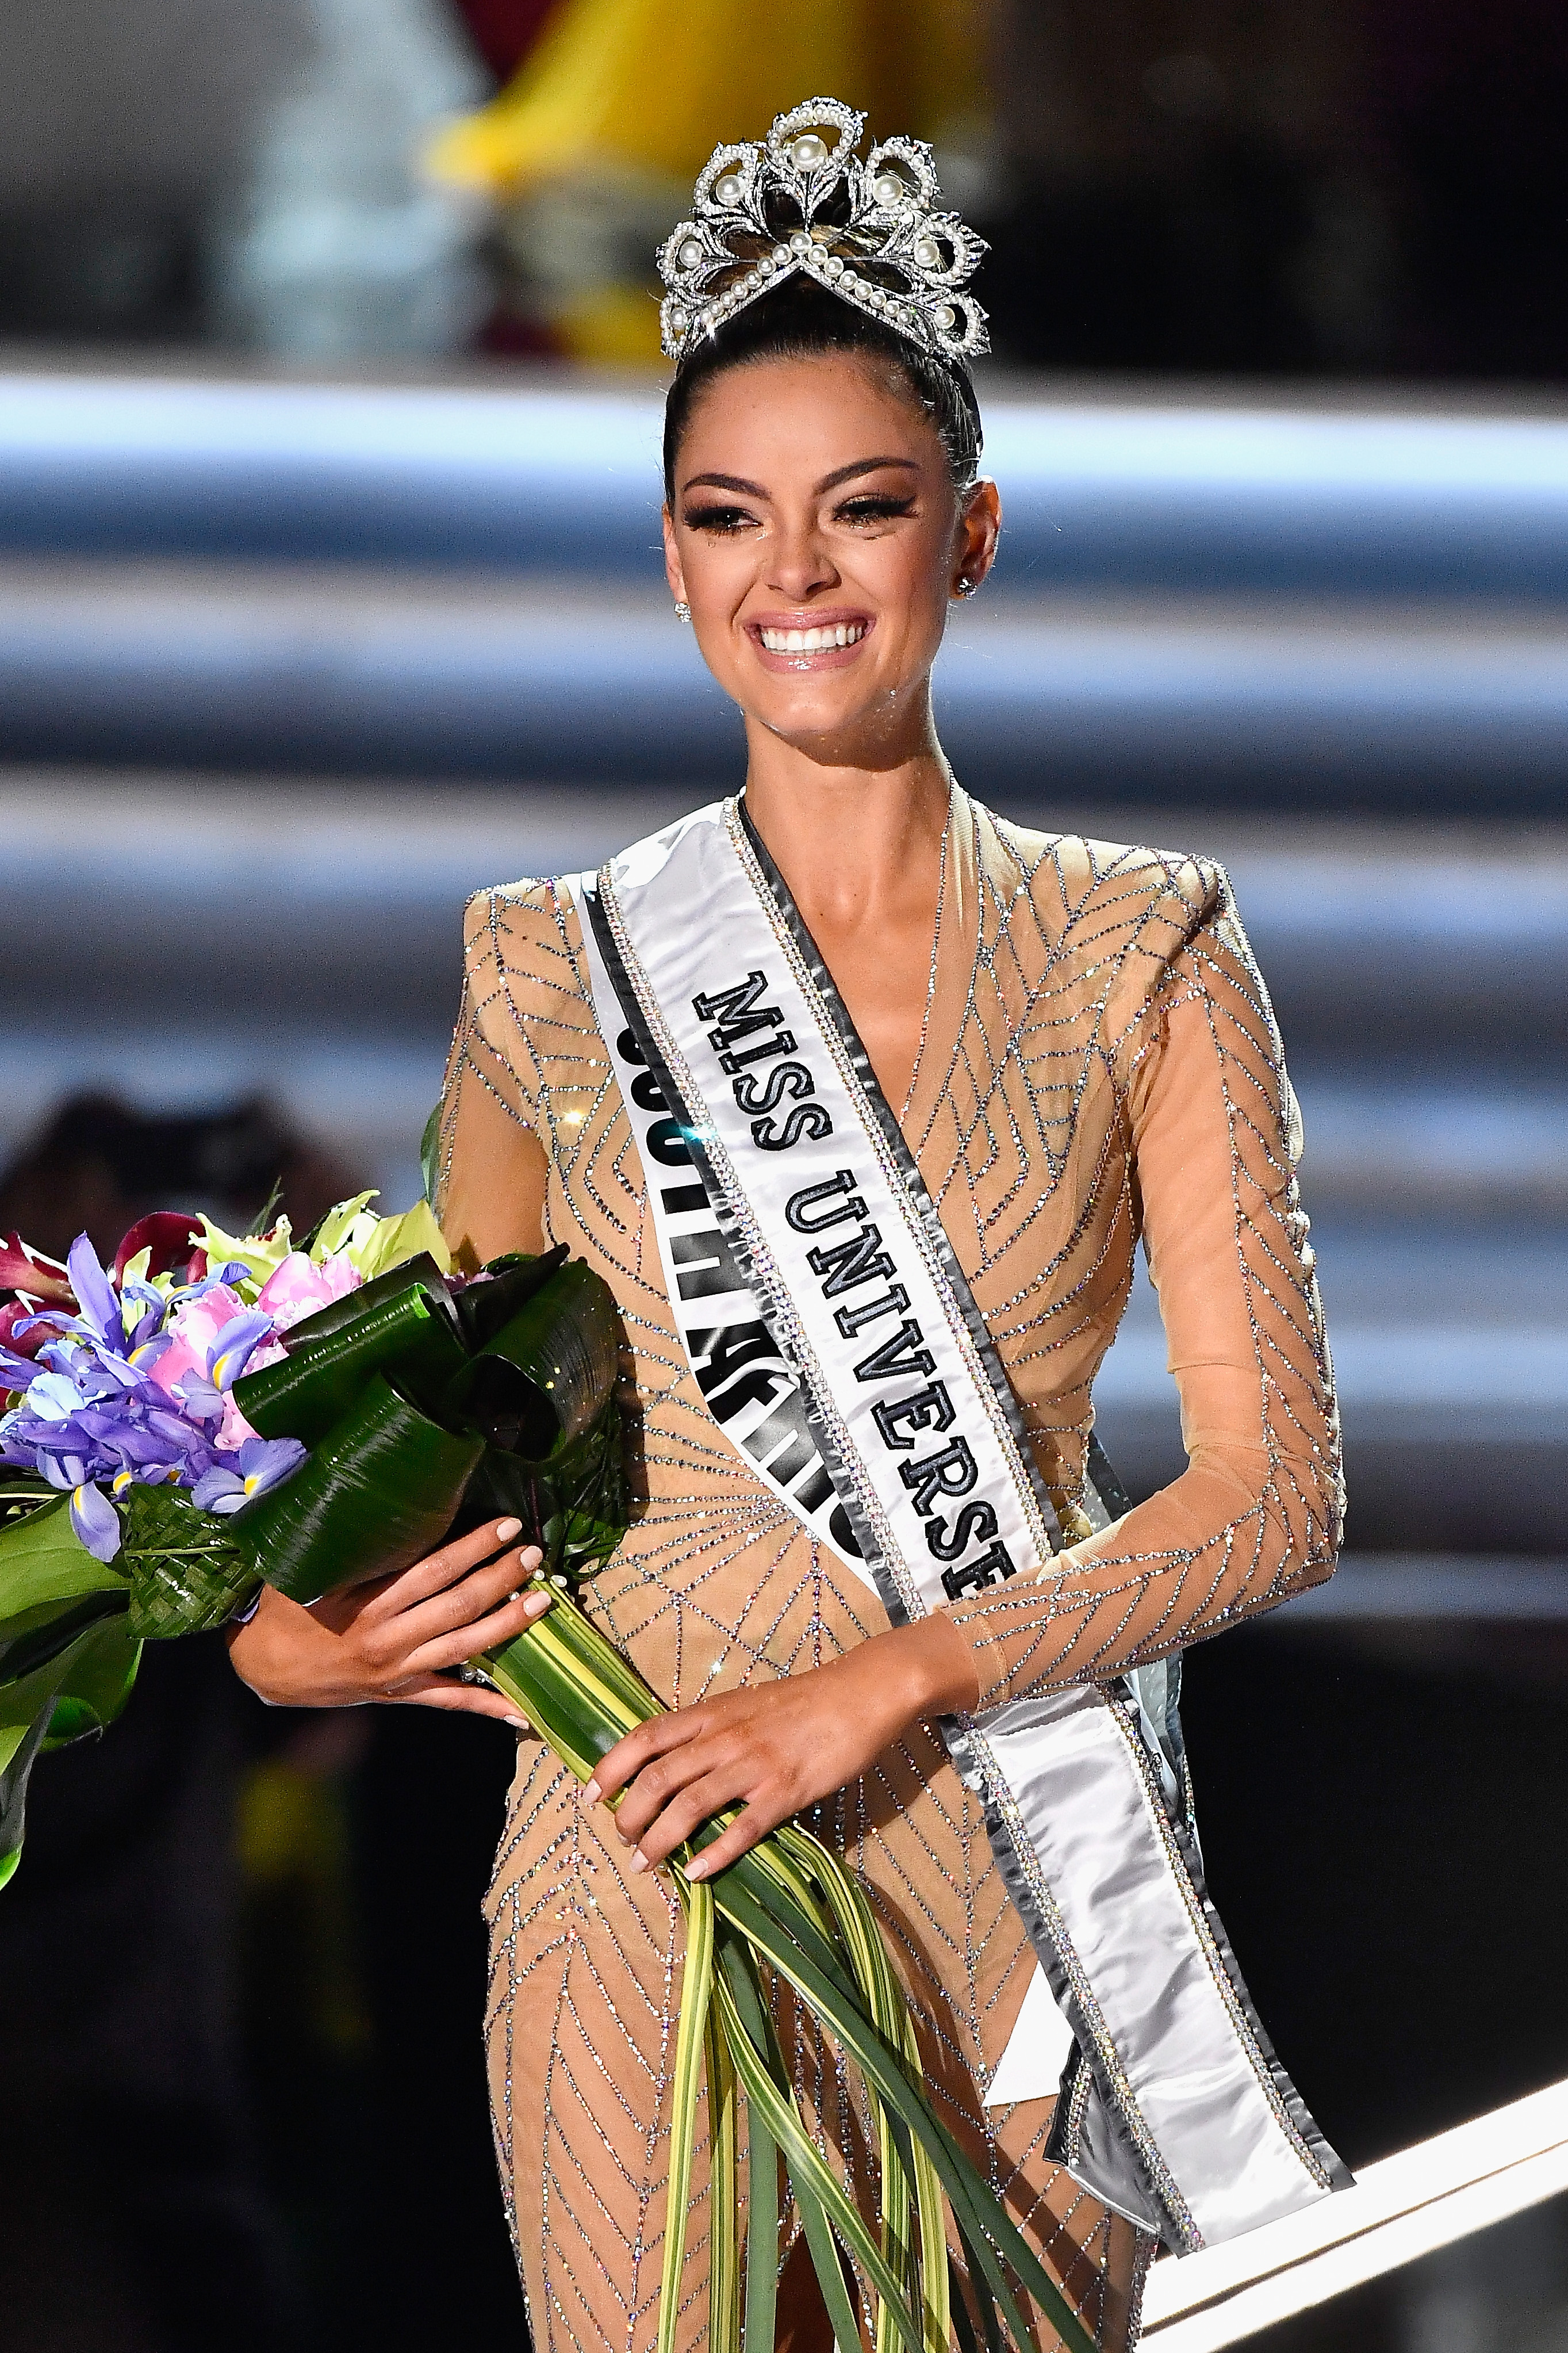 Miss Universo 2017, Demi-Leigh Nel-Peters